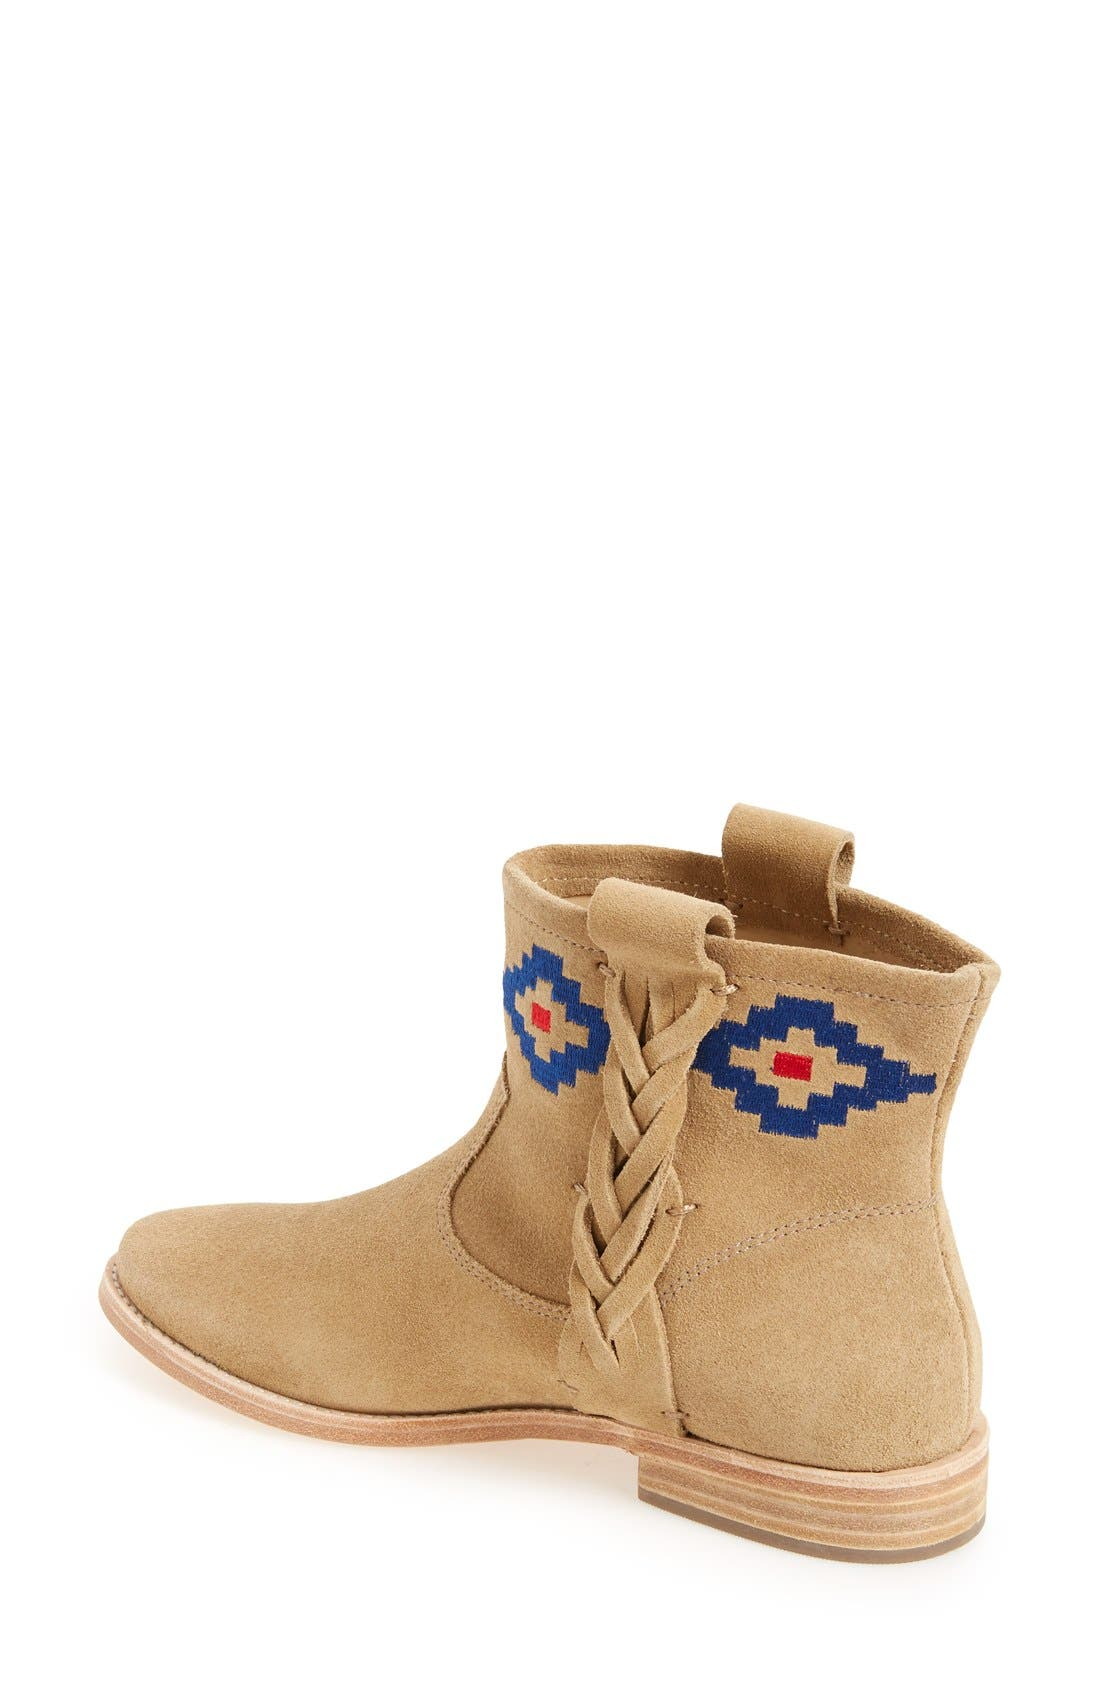 Alternate Image 2  - Soludos Embroidered Bootie (Women)